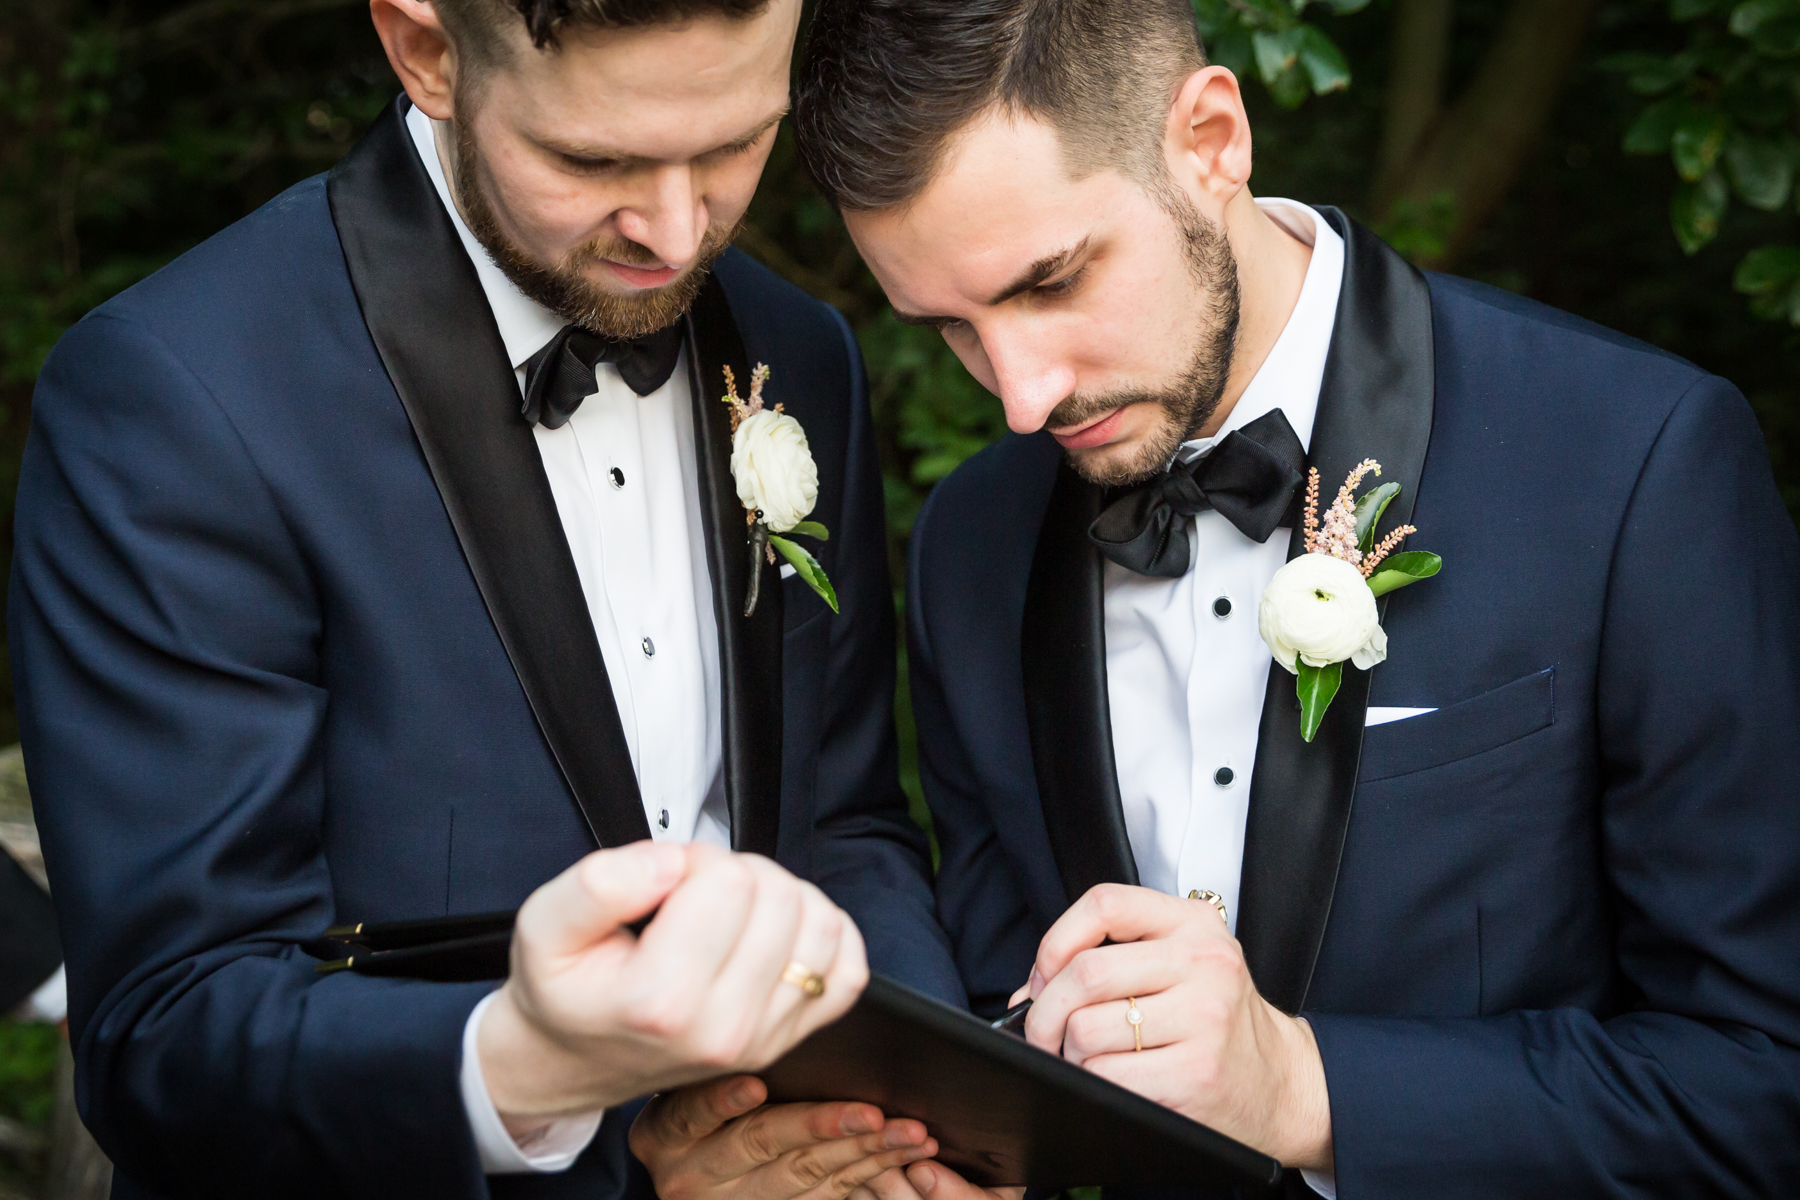 Two grooms signing marriage license for an article entitled, 'Do you need a permit to get married in Central Park?'